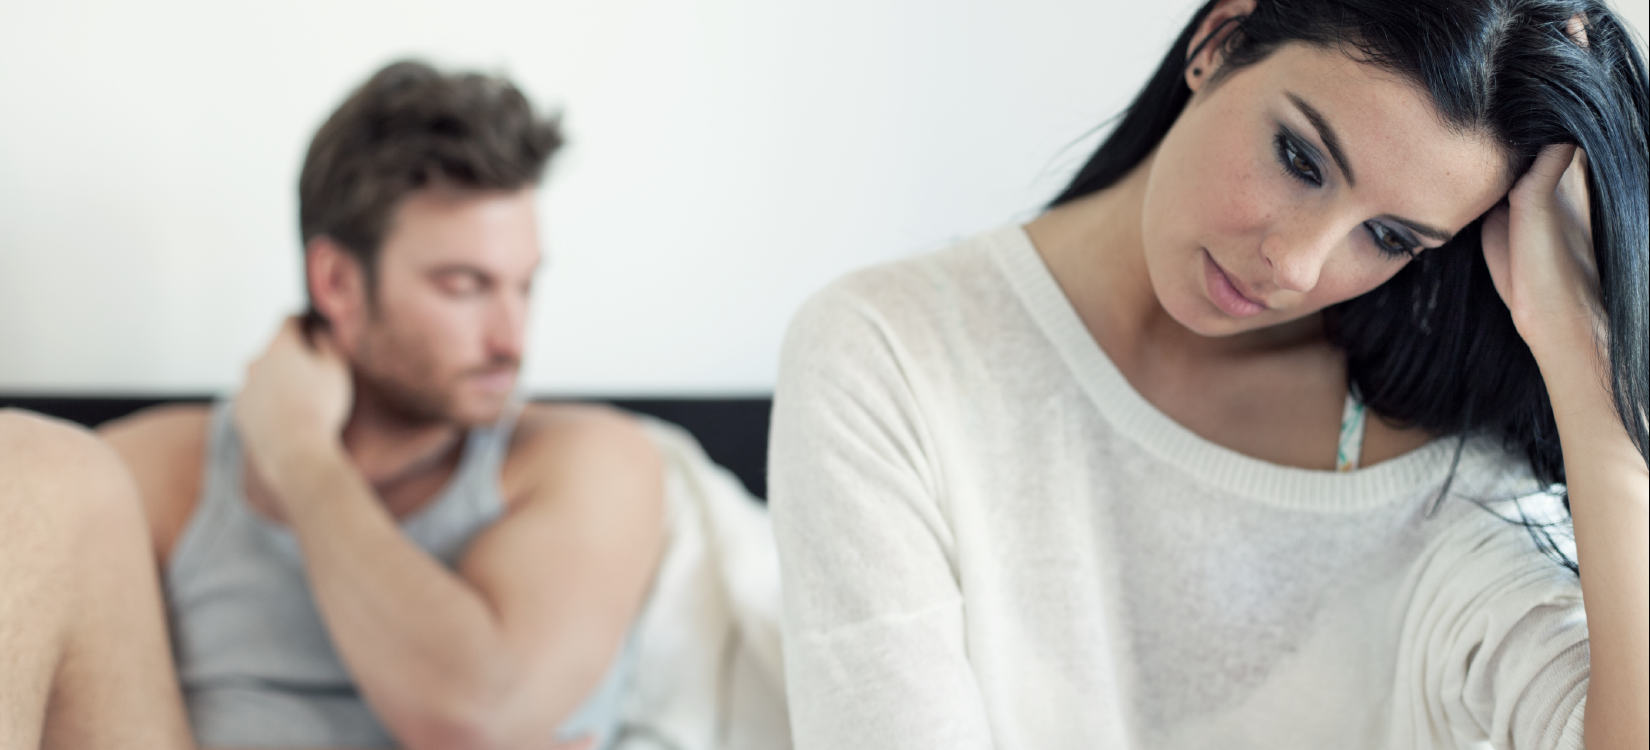 Which Erectile Dysfunction Medication Is The Most Effective?